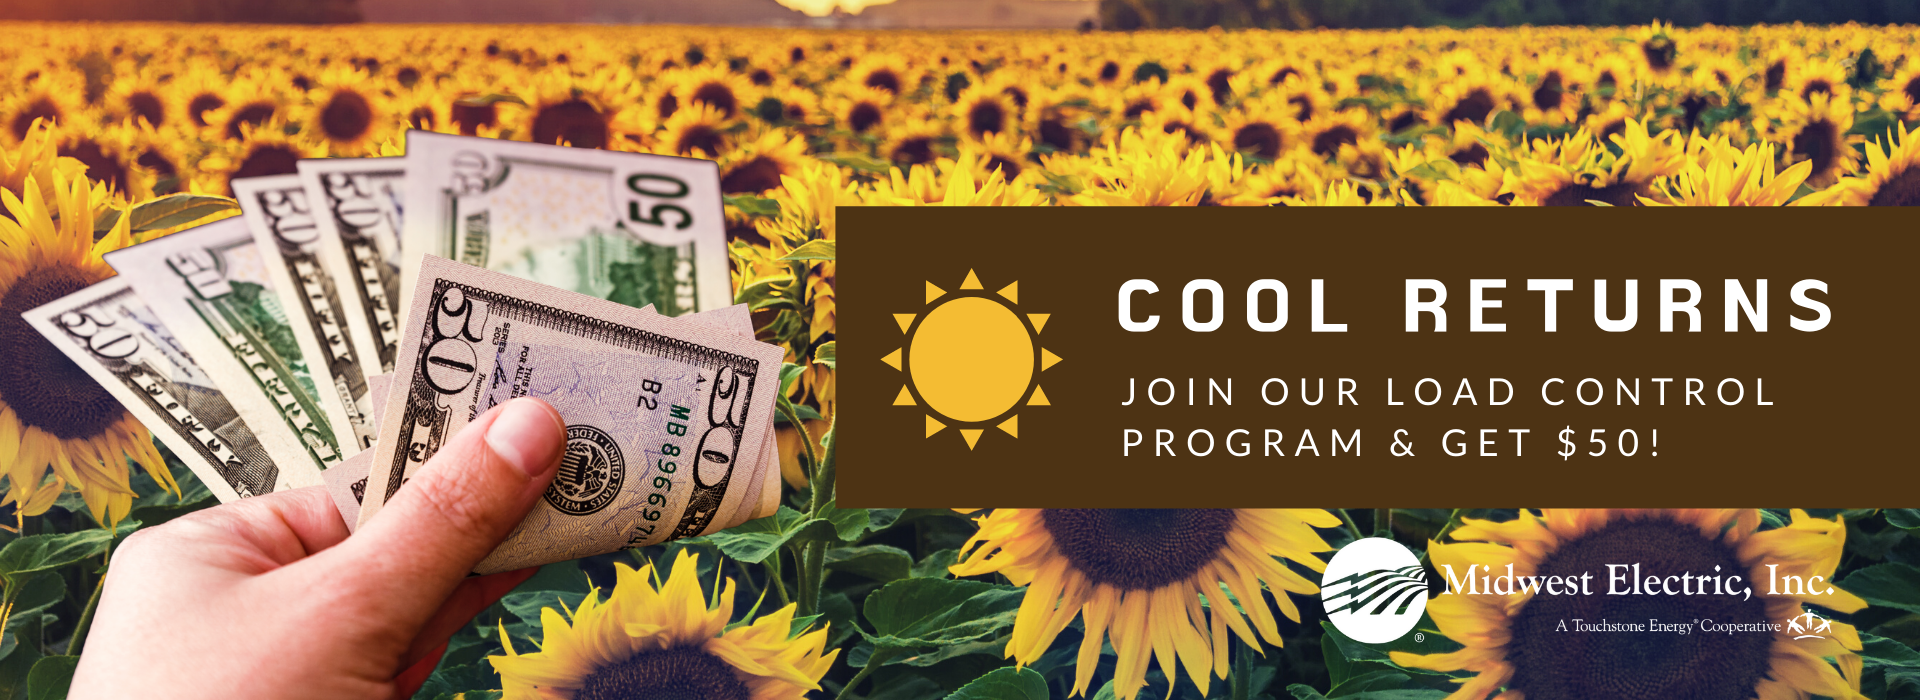 Join Cool Returns to get a $50 rebate today and help the co-op with load control!